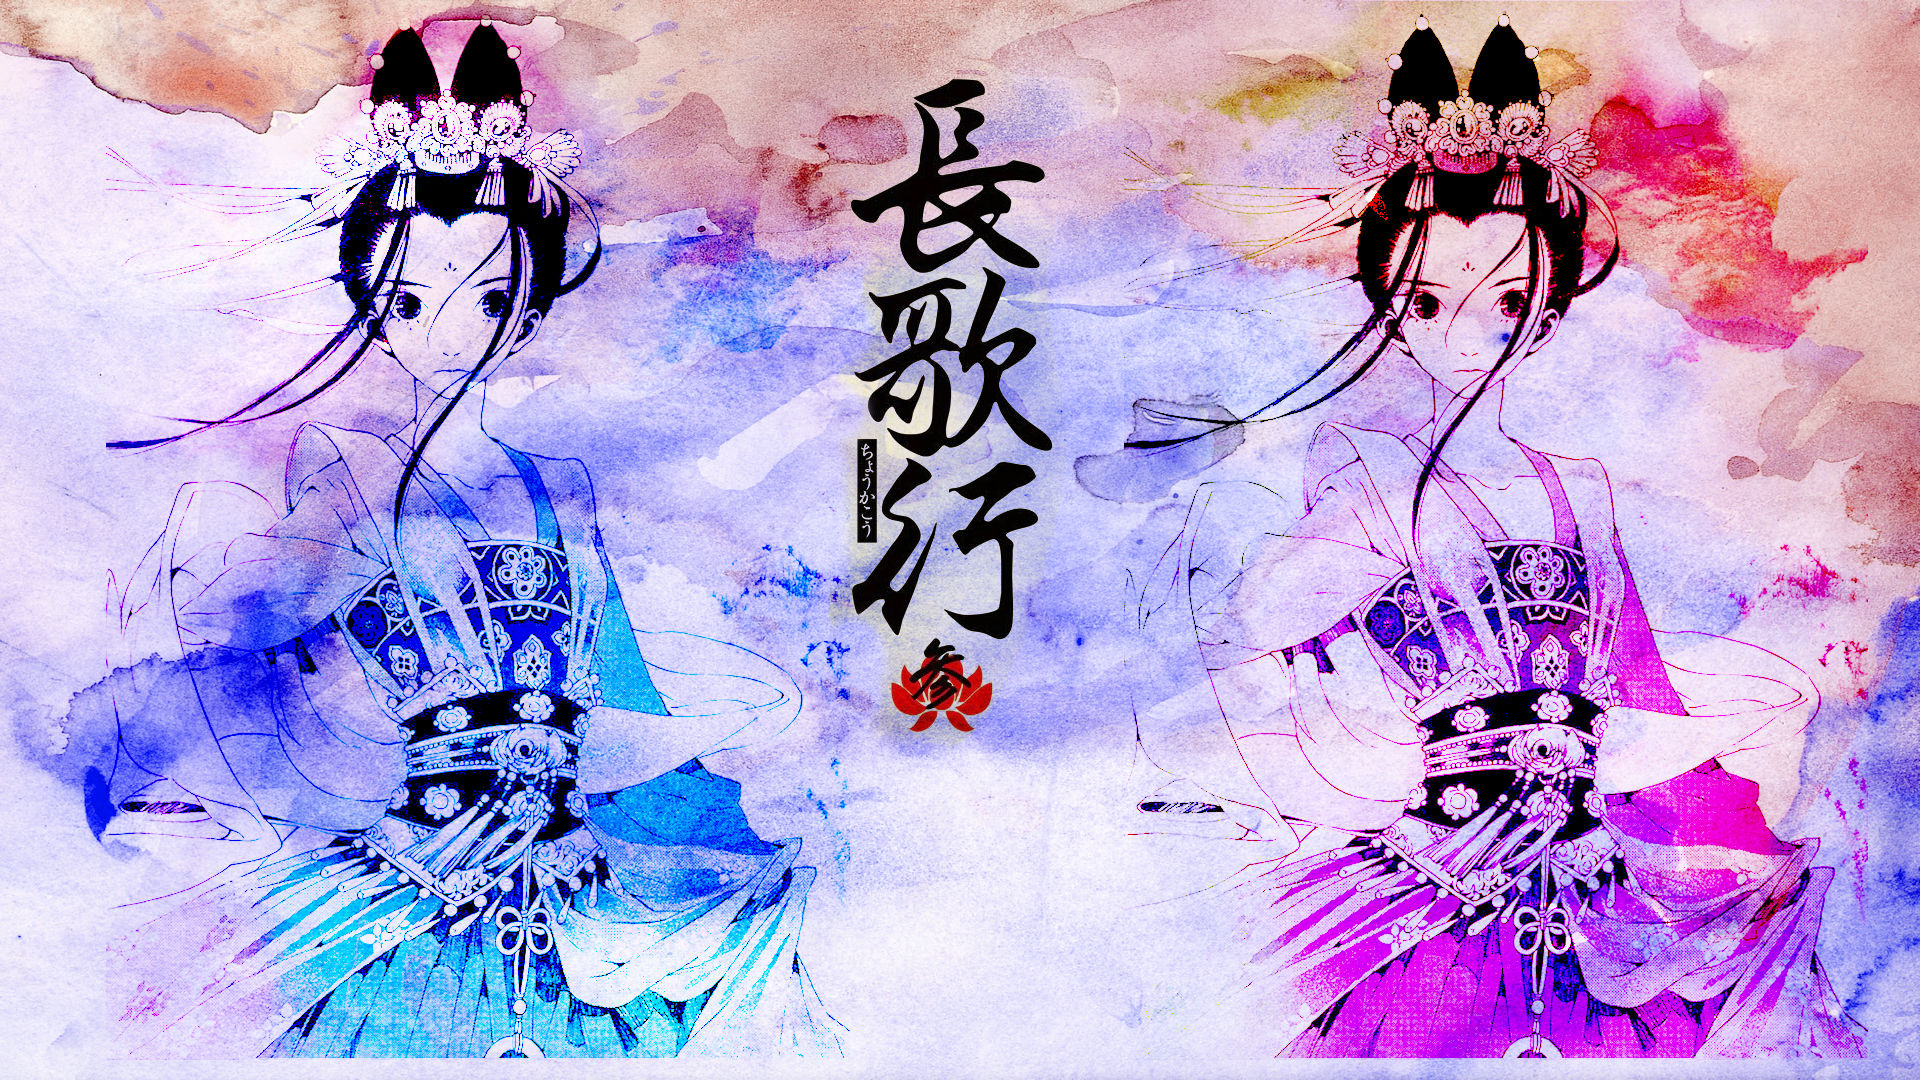 Chang Ge Xing - wallpaper by Tarlan